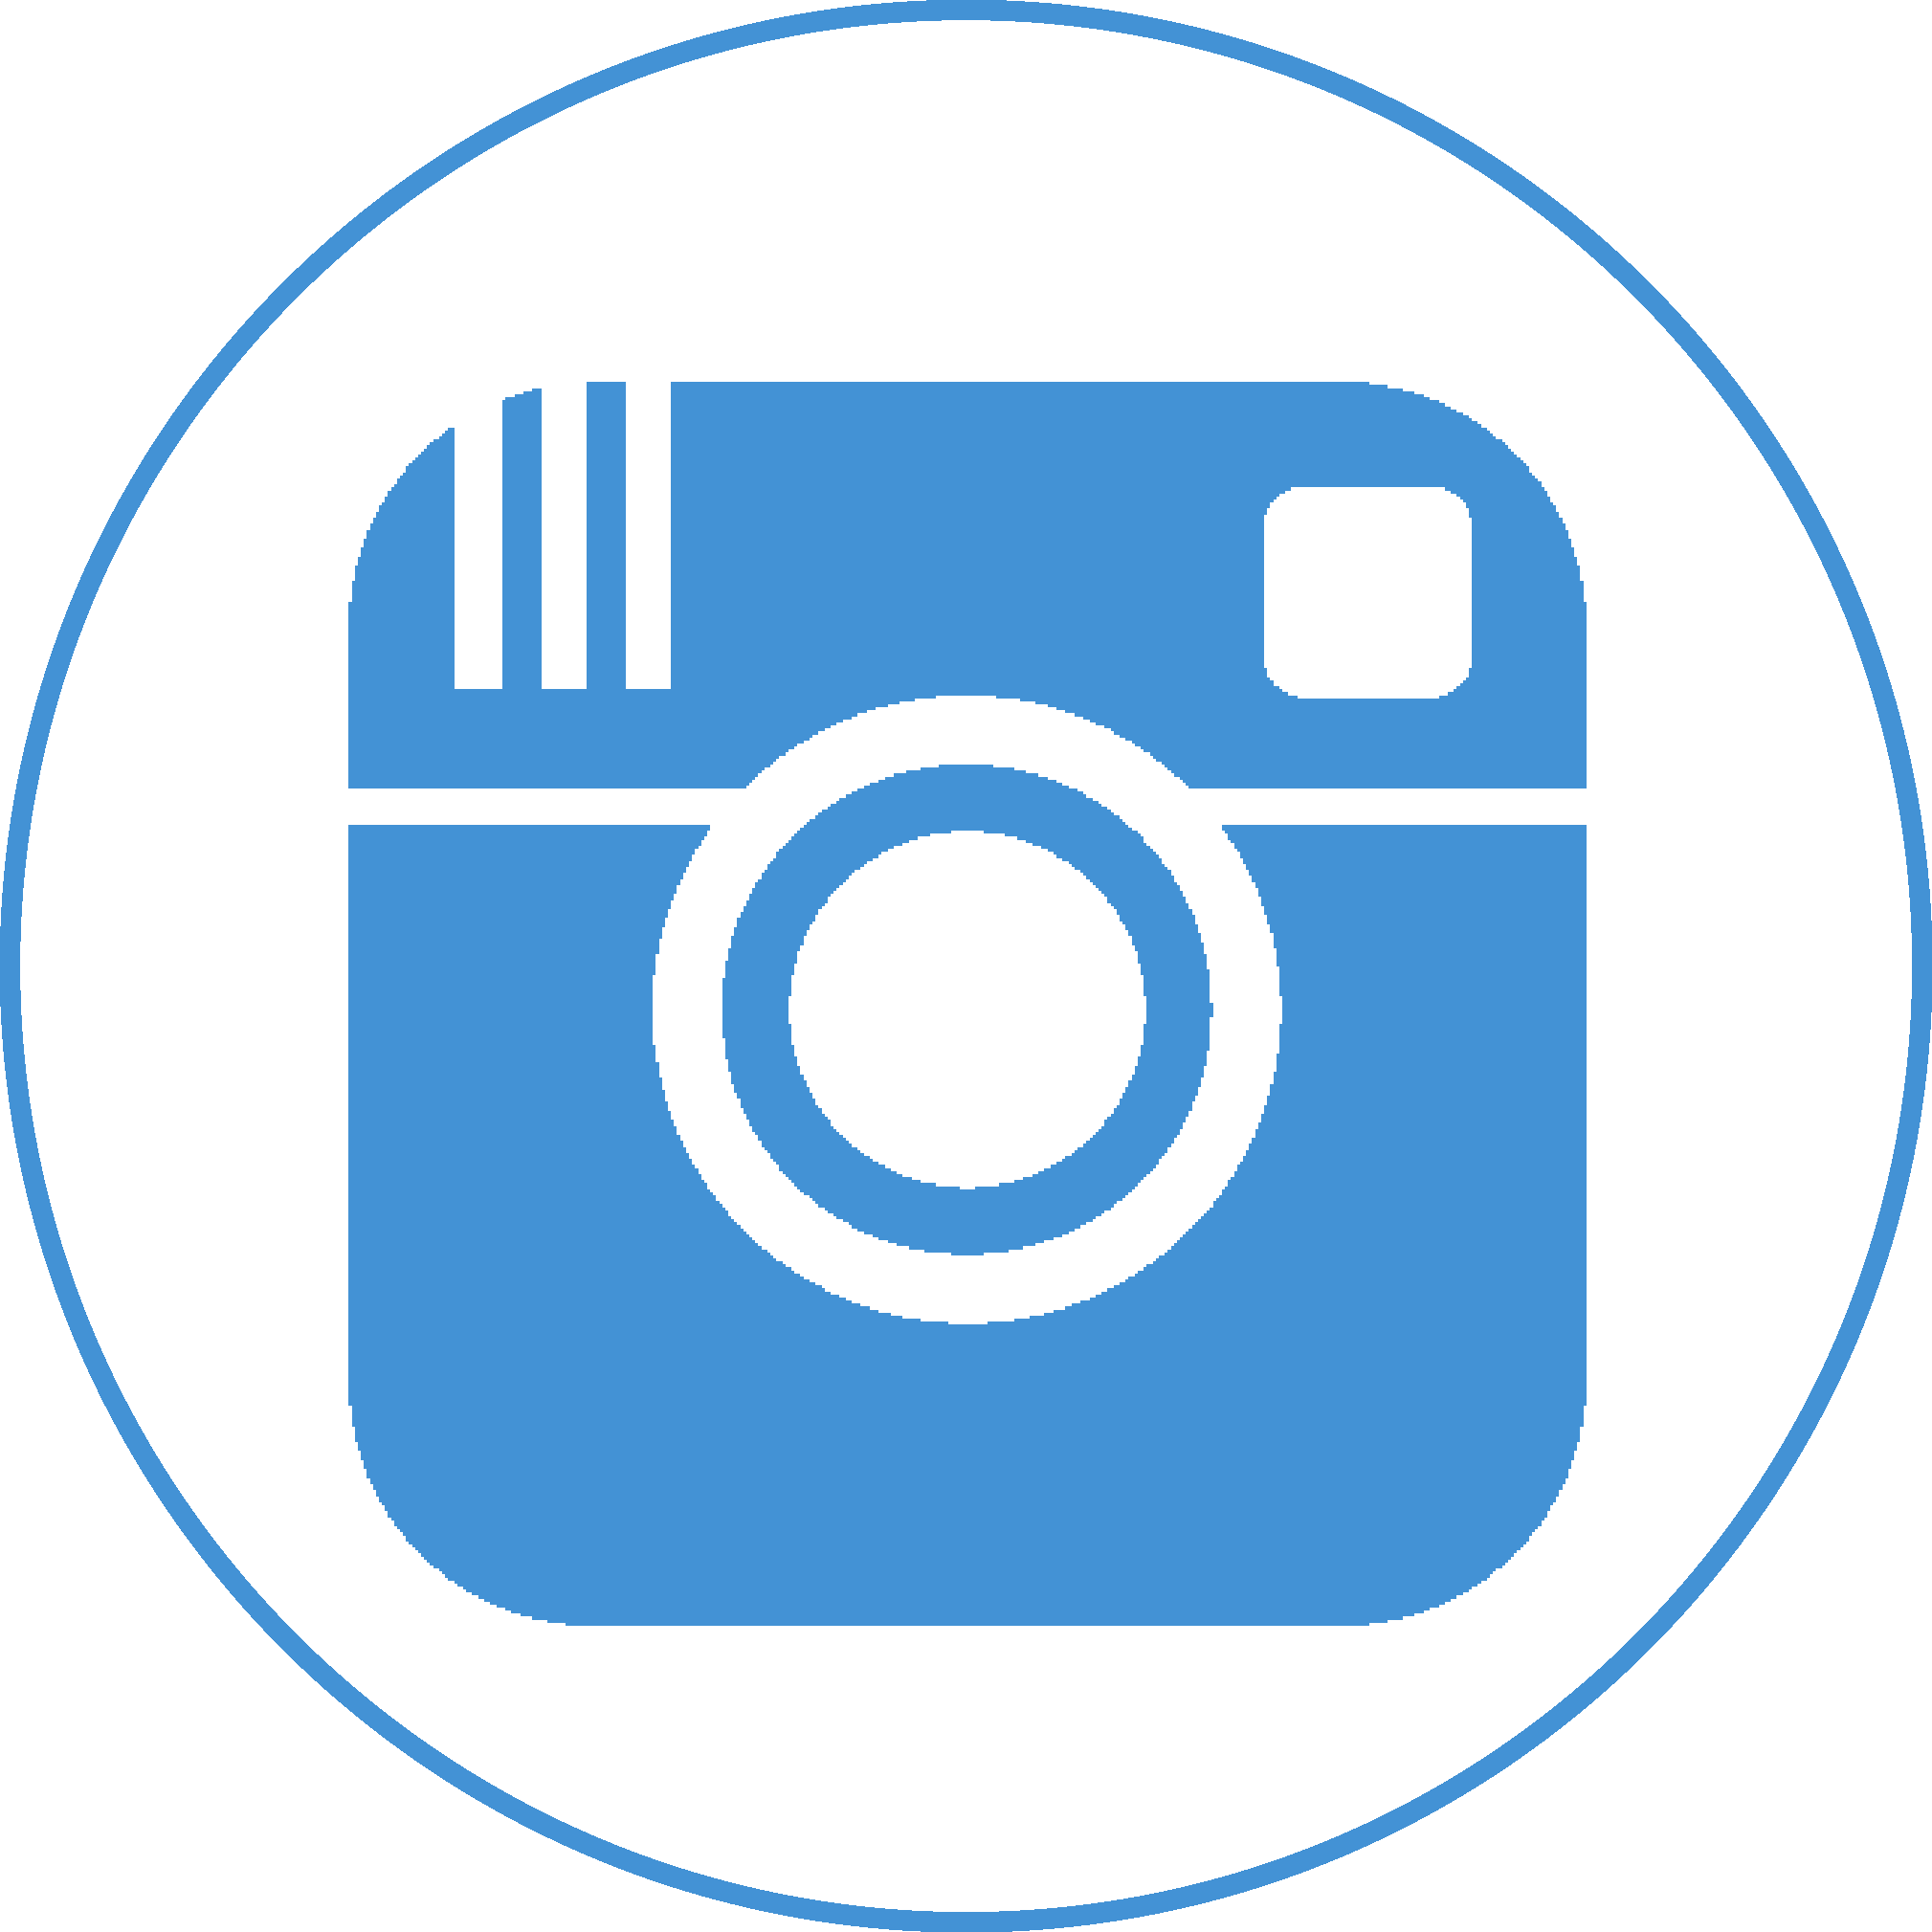 instagram logo clipart – Clipart Free Download